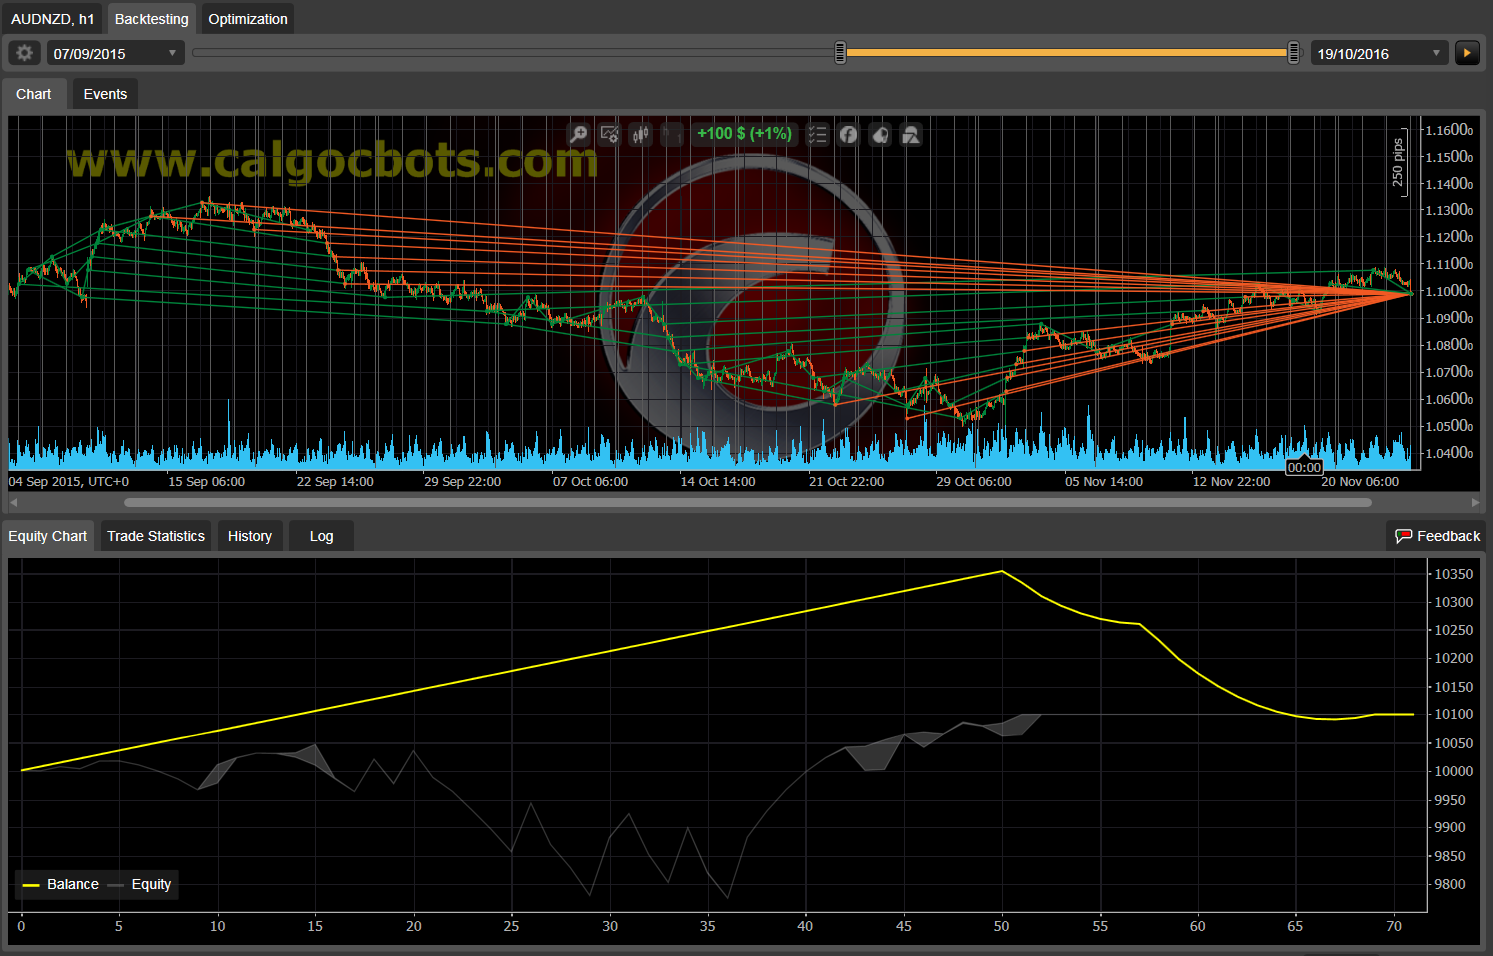 Dual Grid Hedge AUD NZD 1h cAlgo cBots cTrader 1k 100 50 100 - 02